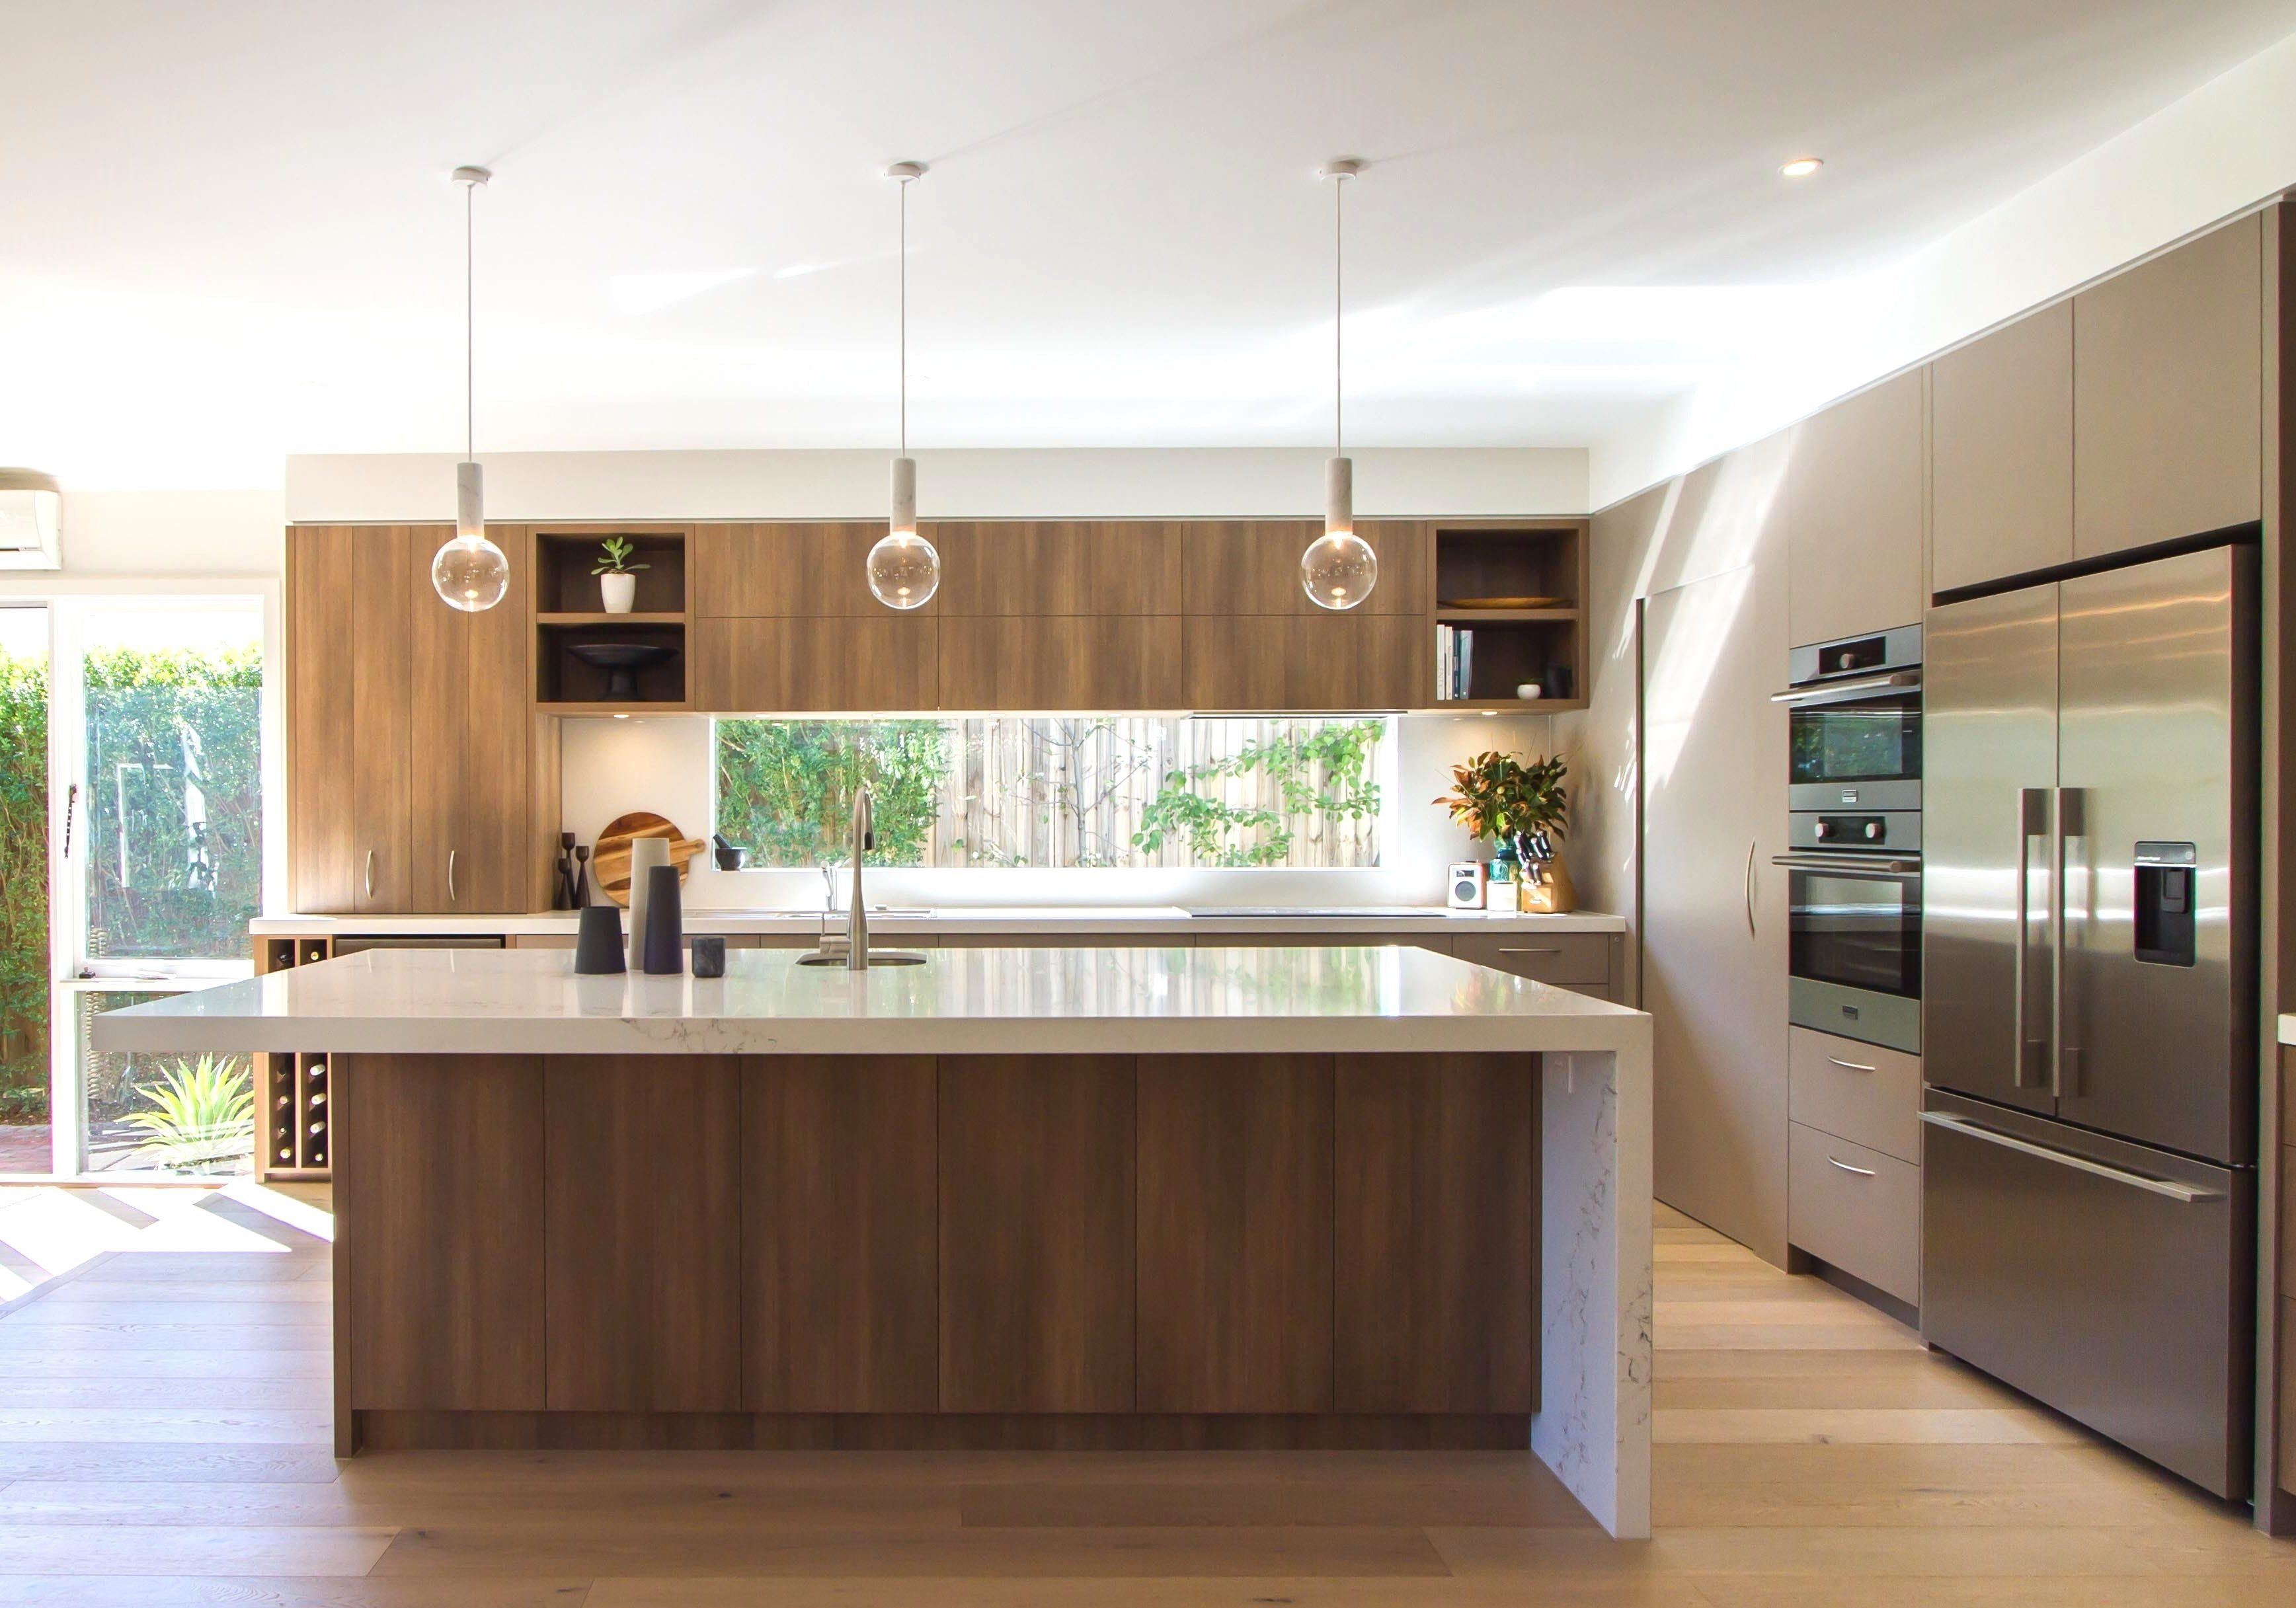 10 Fabulous Kitchen Design Ideas With Island l shaped kitchen designs ideas for your beloved home island bench 2021